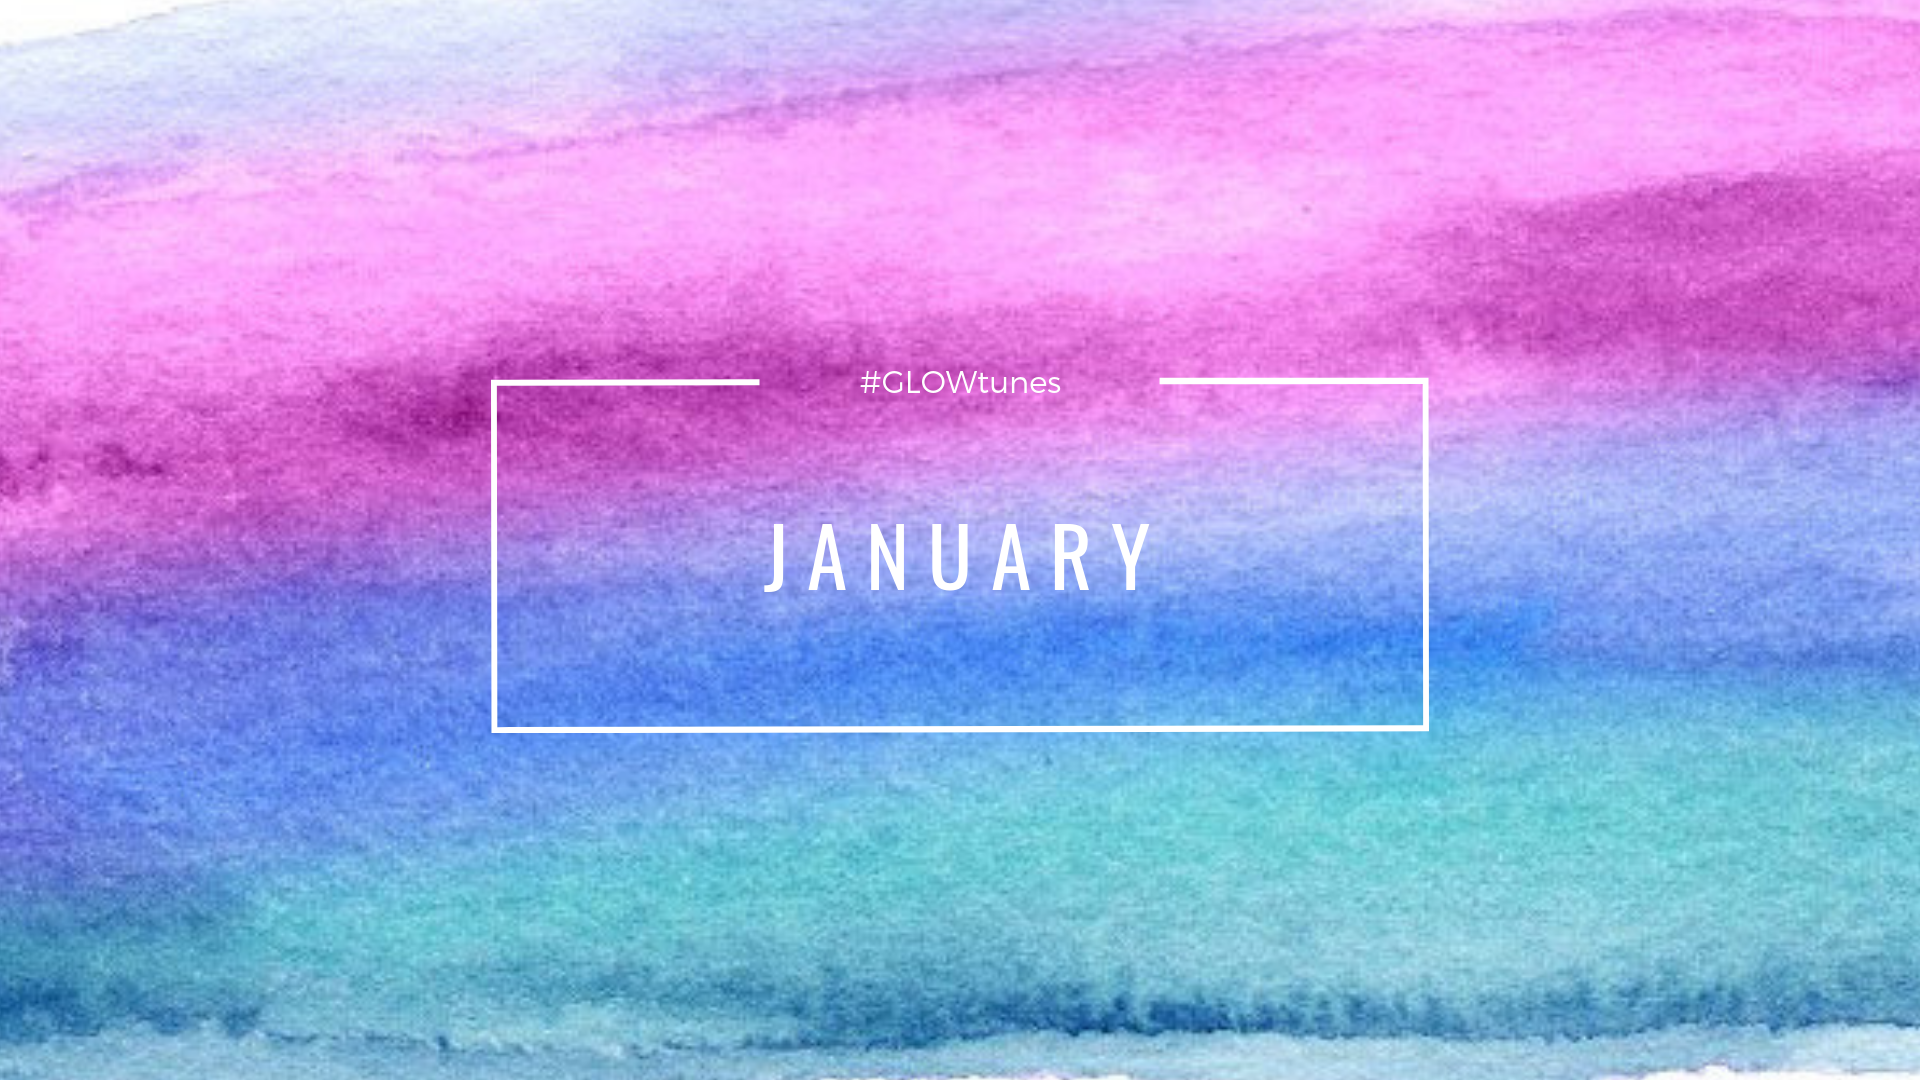 Here is the January 2019 #GLOWtunes playlist, for your listening pleasure. Straight from your glow girls. As music-obsessed chicks, we're excited to share with you a mix of tunes that we love. Some rap, chill, hip hop, electronic, and just good beats.  ENJOY xx  LISTEN HERE ::  https://open.spotify.com/user/howyouglow/playlist/0ec2Un9bzRKMd6f8RrXIIM?si=bFuz6IHATIC-uP0X_dlAmg